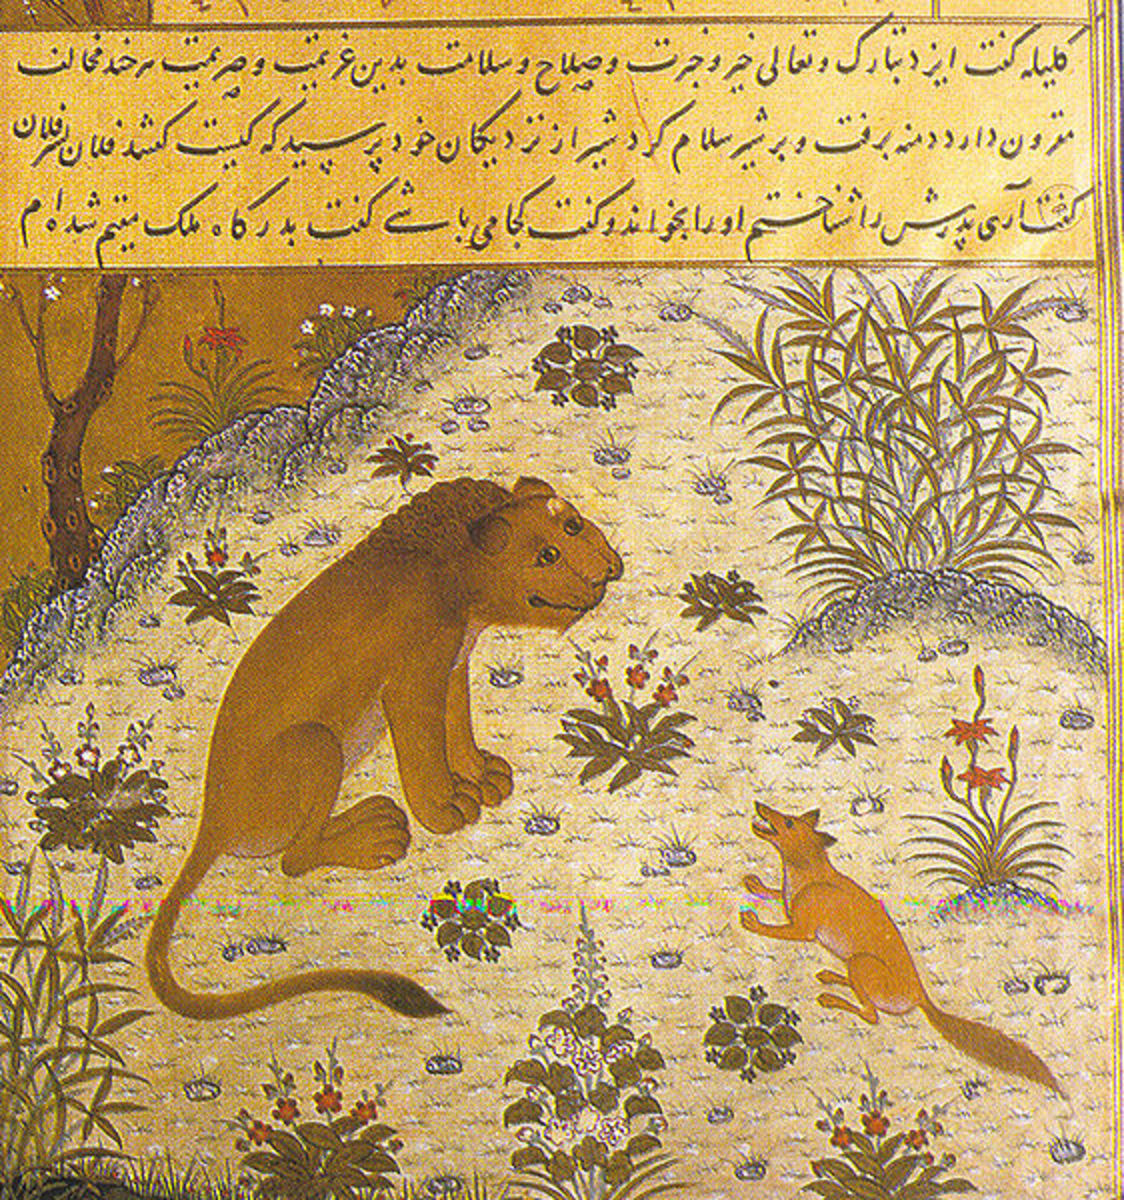 from Book One of Panchatantra, The Separation of Friends, the 15th century Persian version